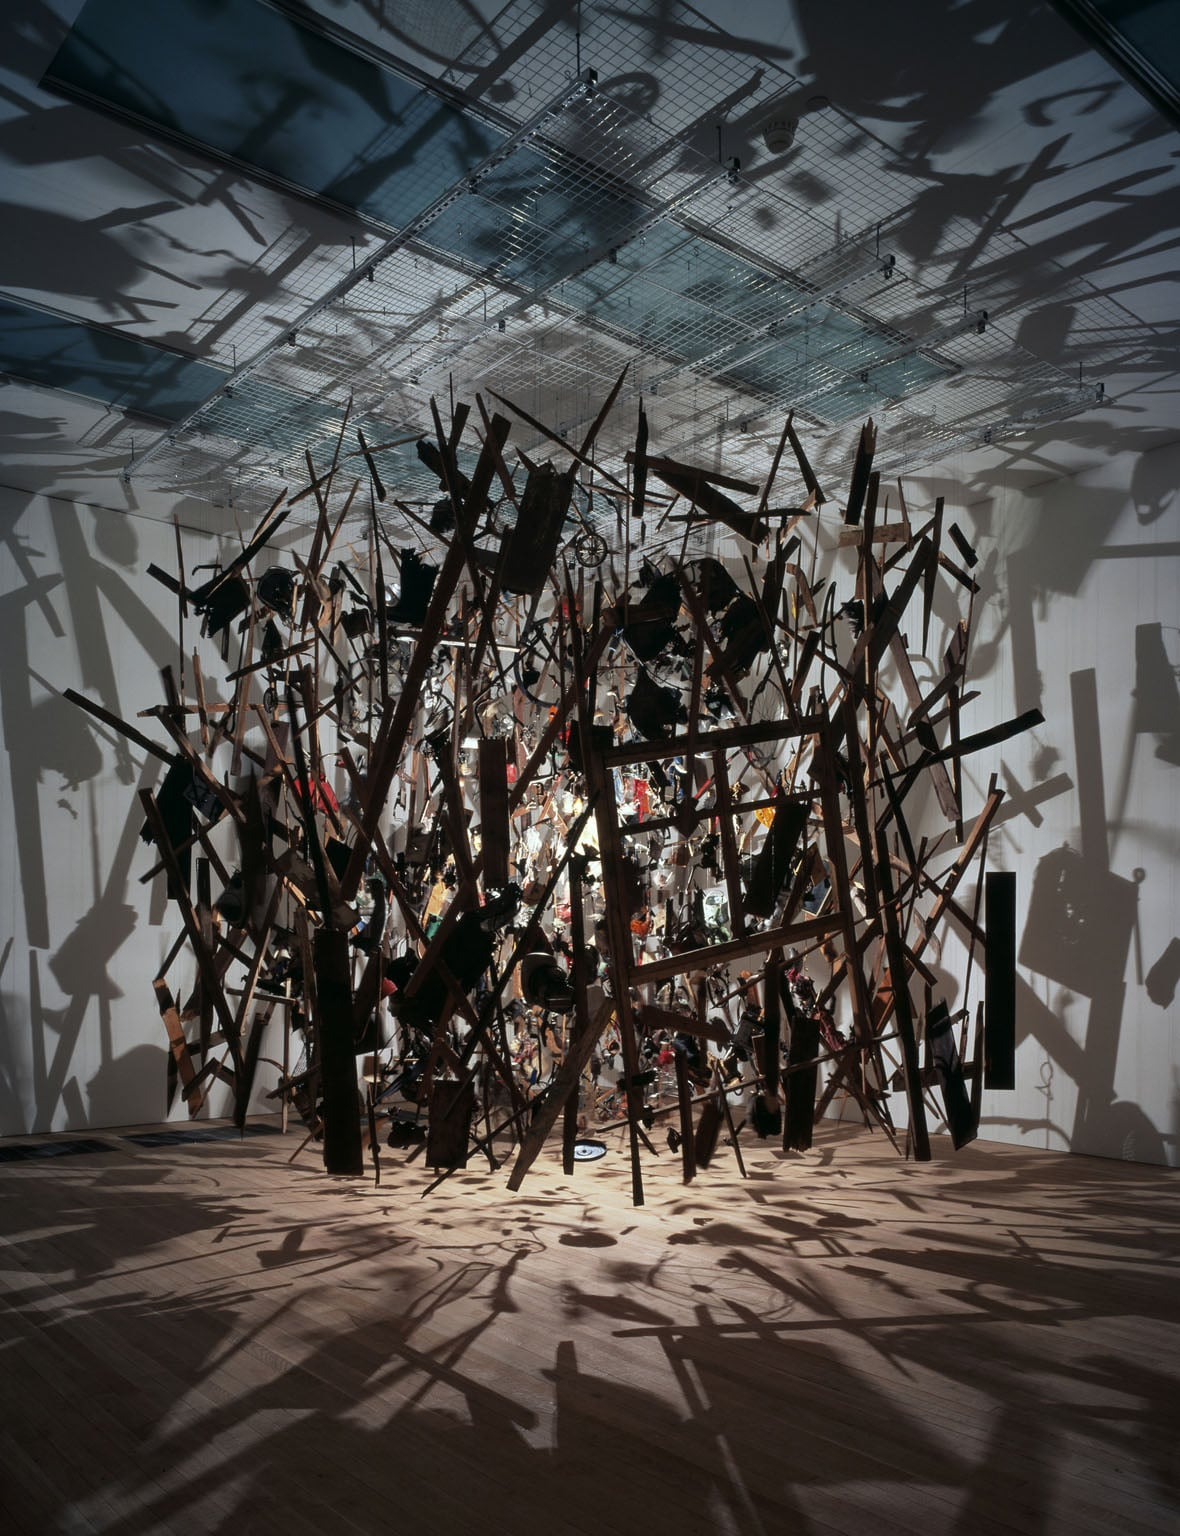 10. Cornelia Parker, Cold Dark Matter: An Exploded View, 1991 - Tate Collection (not on display)